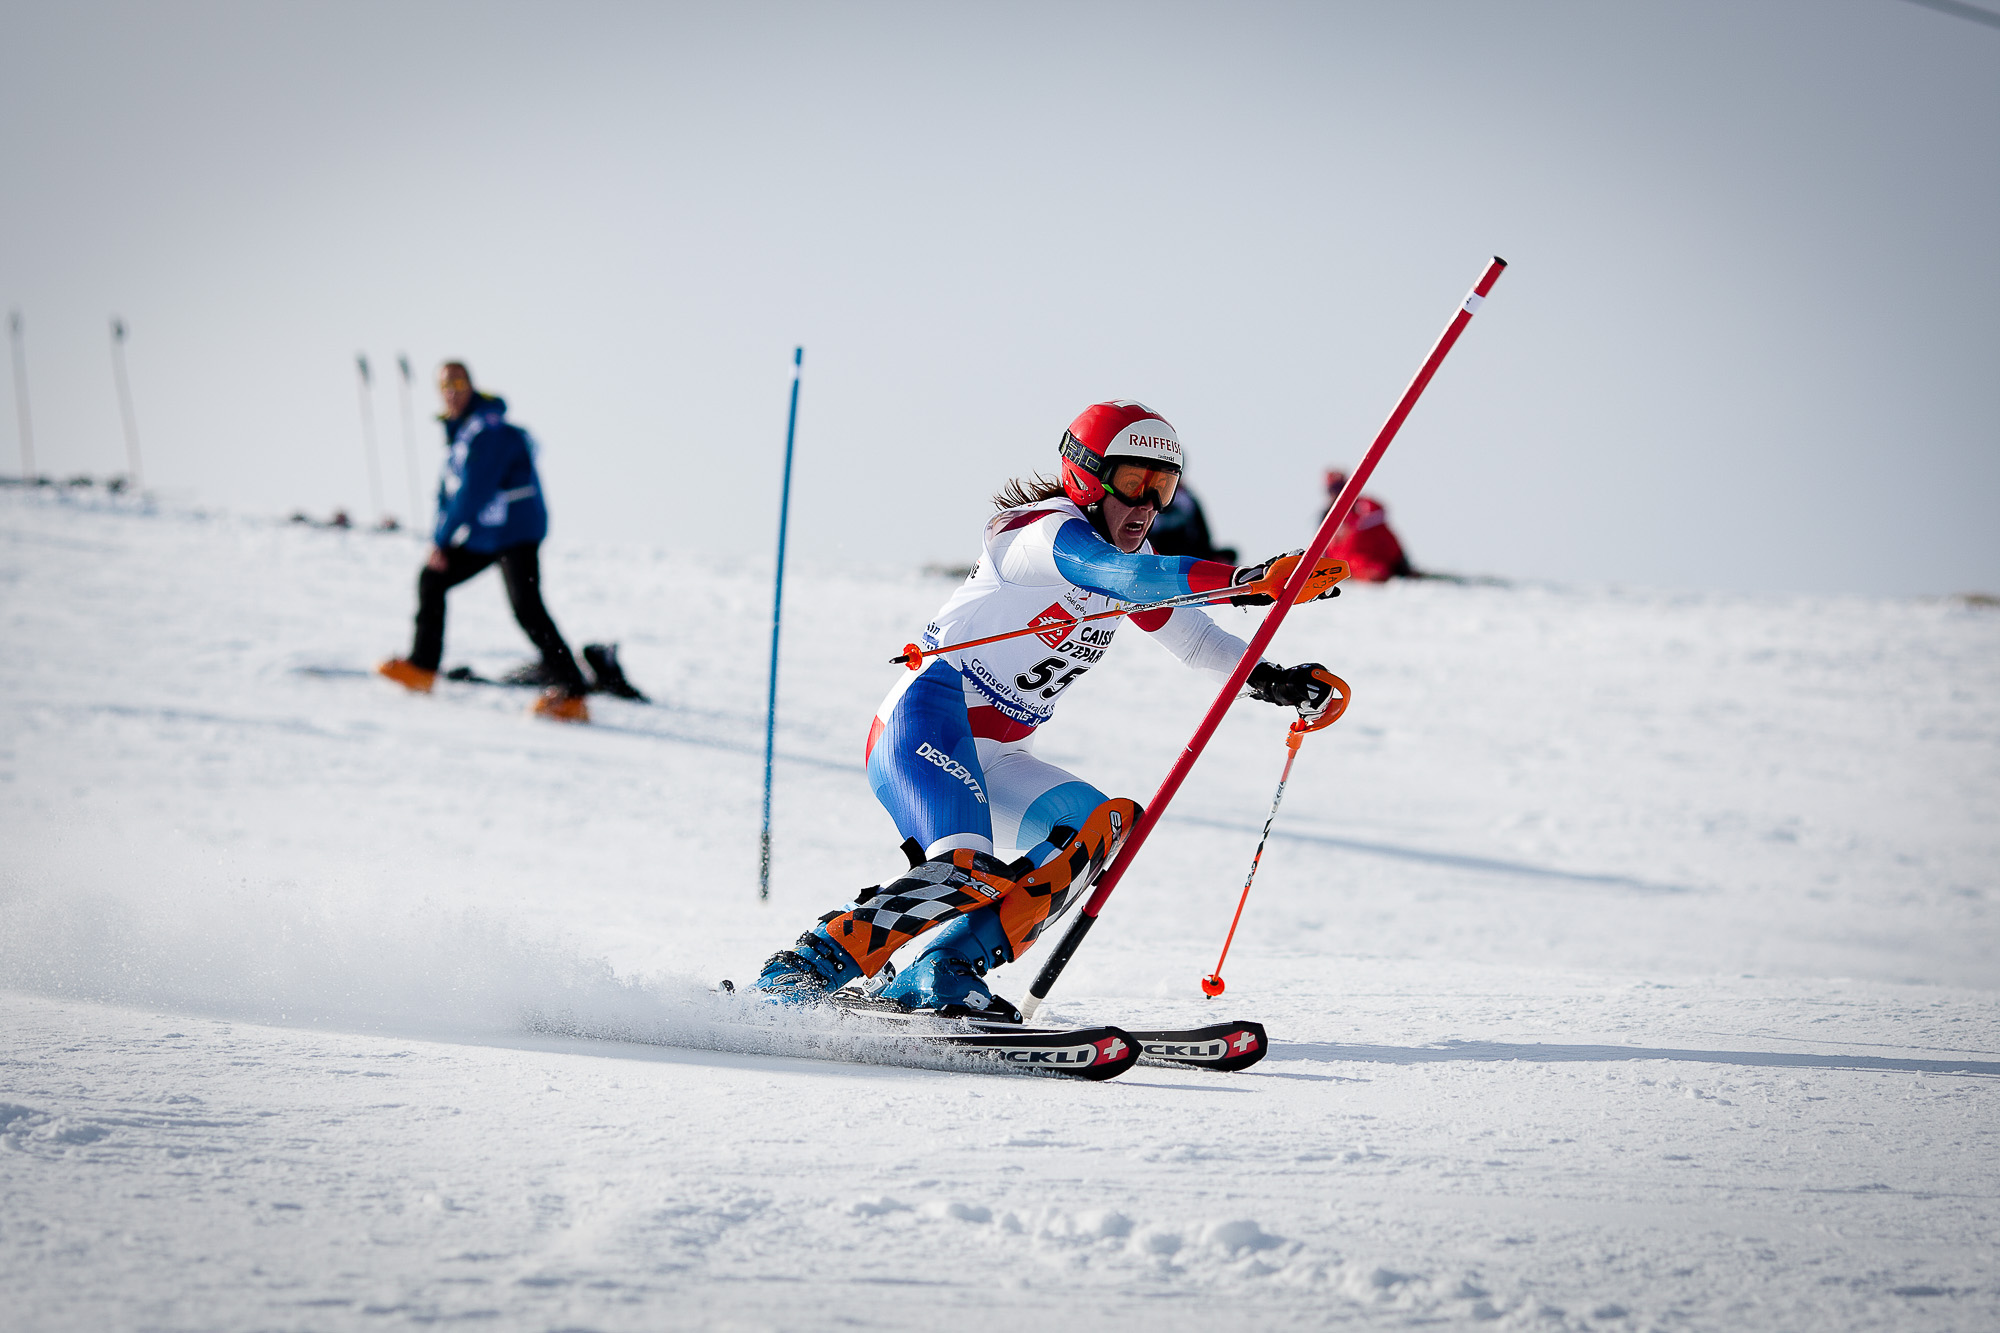 Coupe_Europe_ski_dames-315.jpg